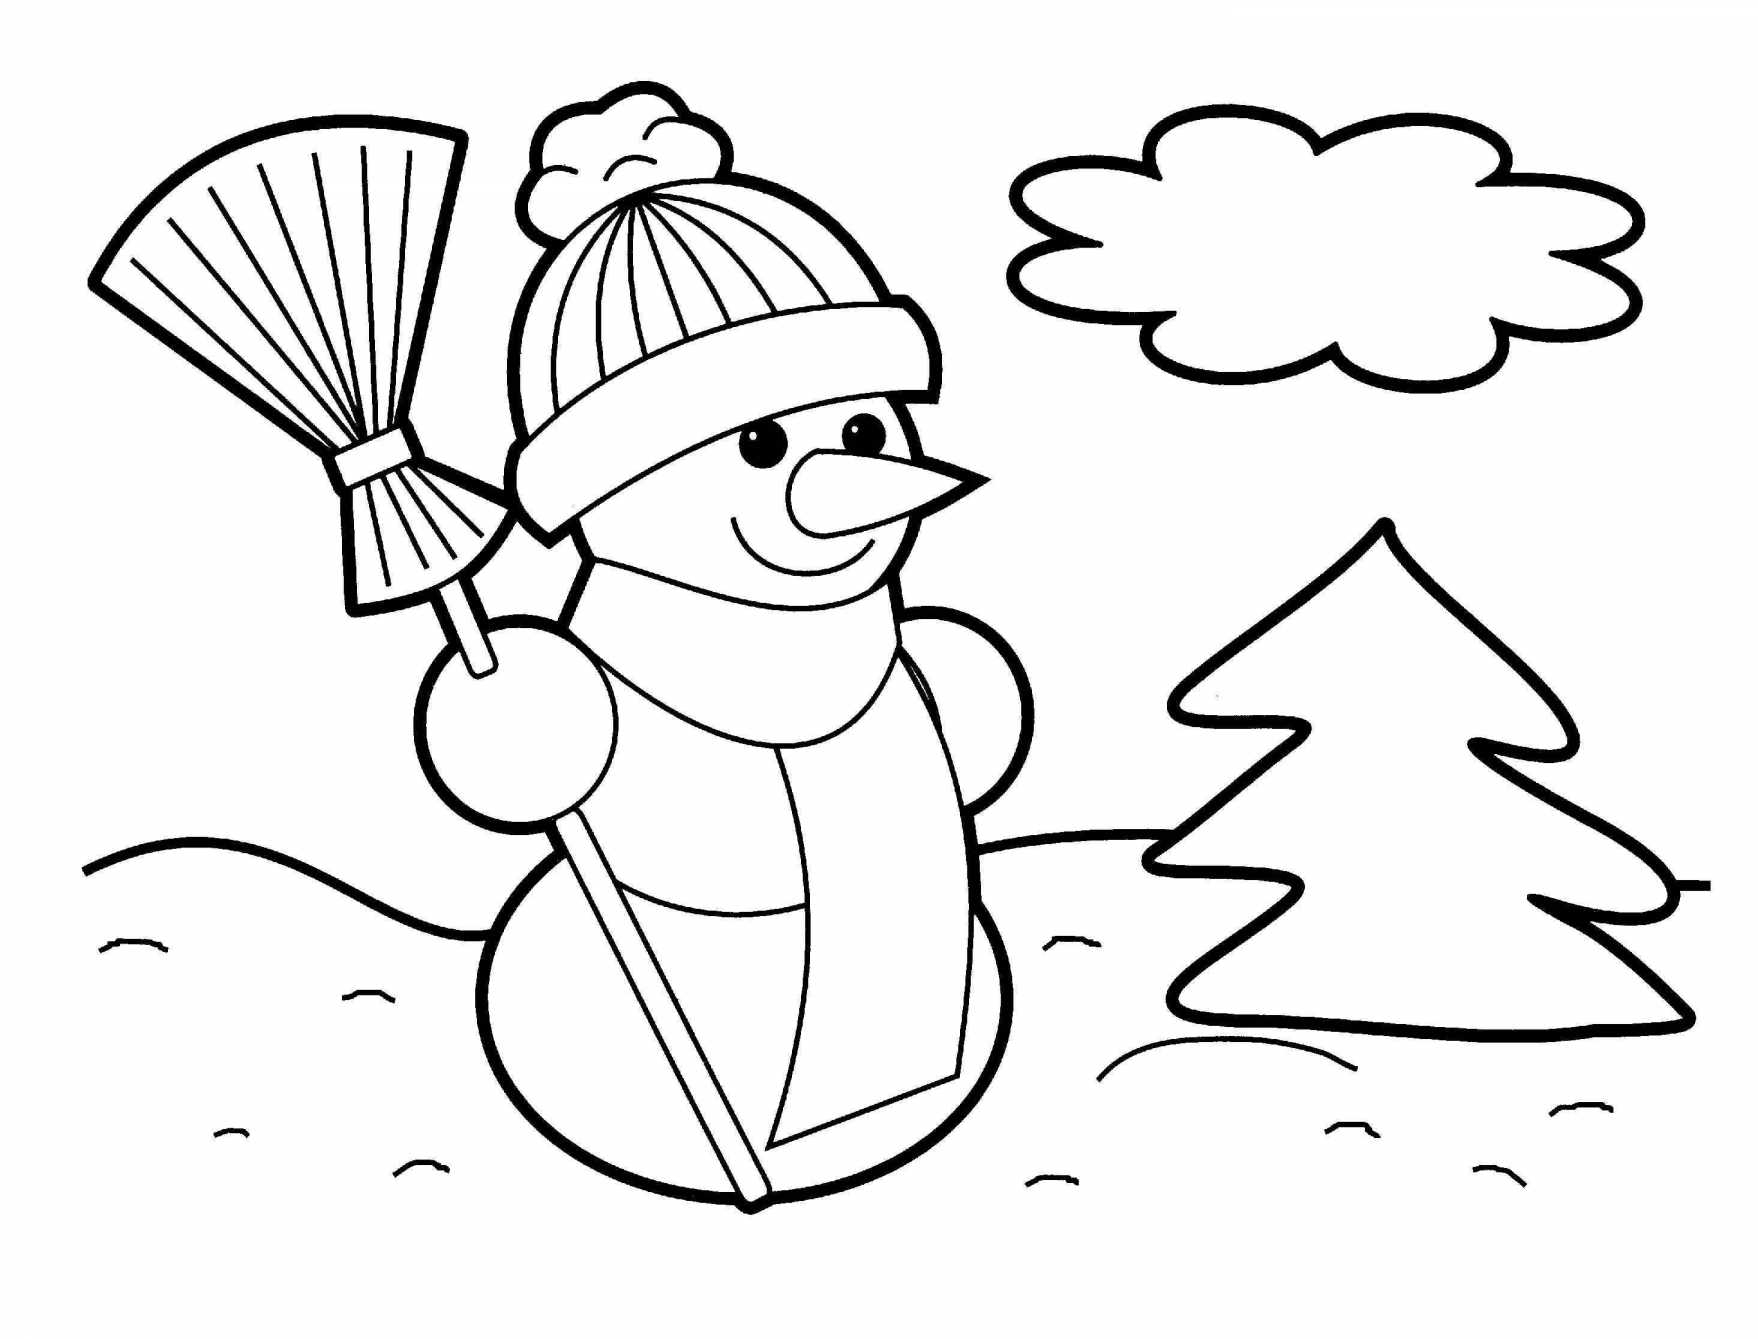 Nativity Coloring Pages Free Printable  Collection 1h - Free For kids